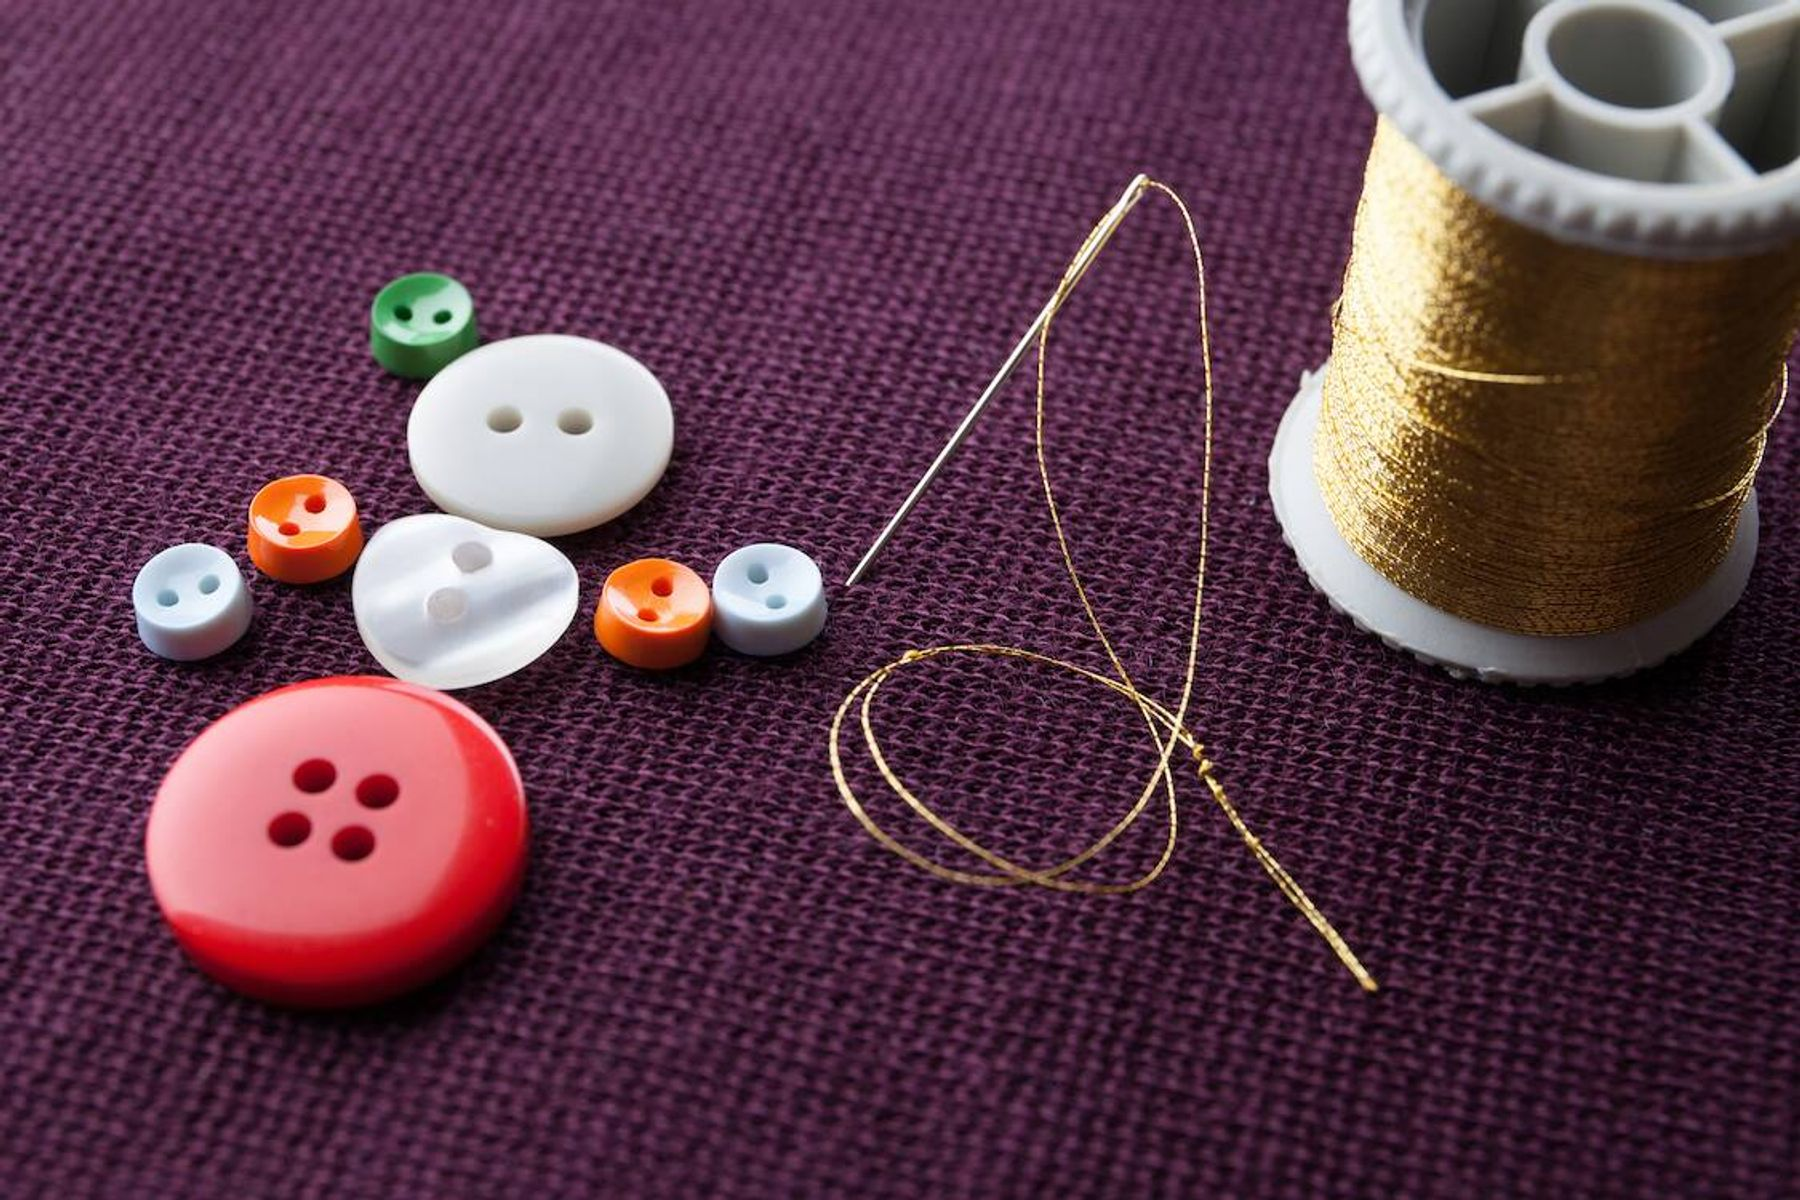 Buttons and thread on a purple background